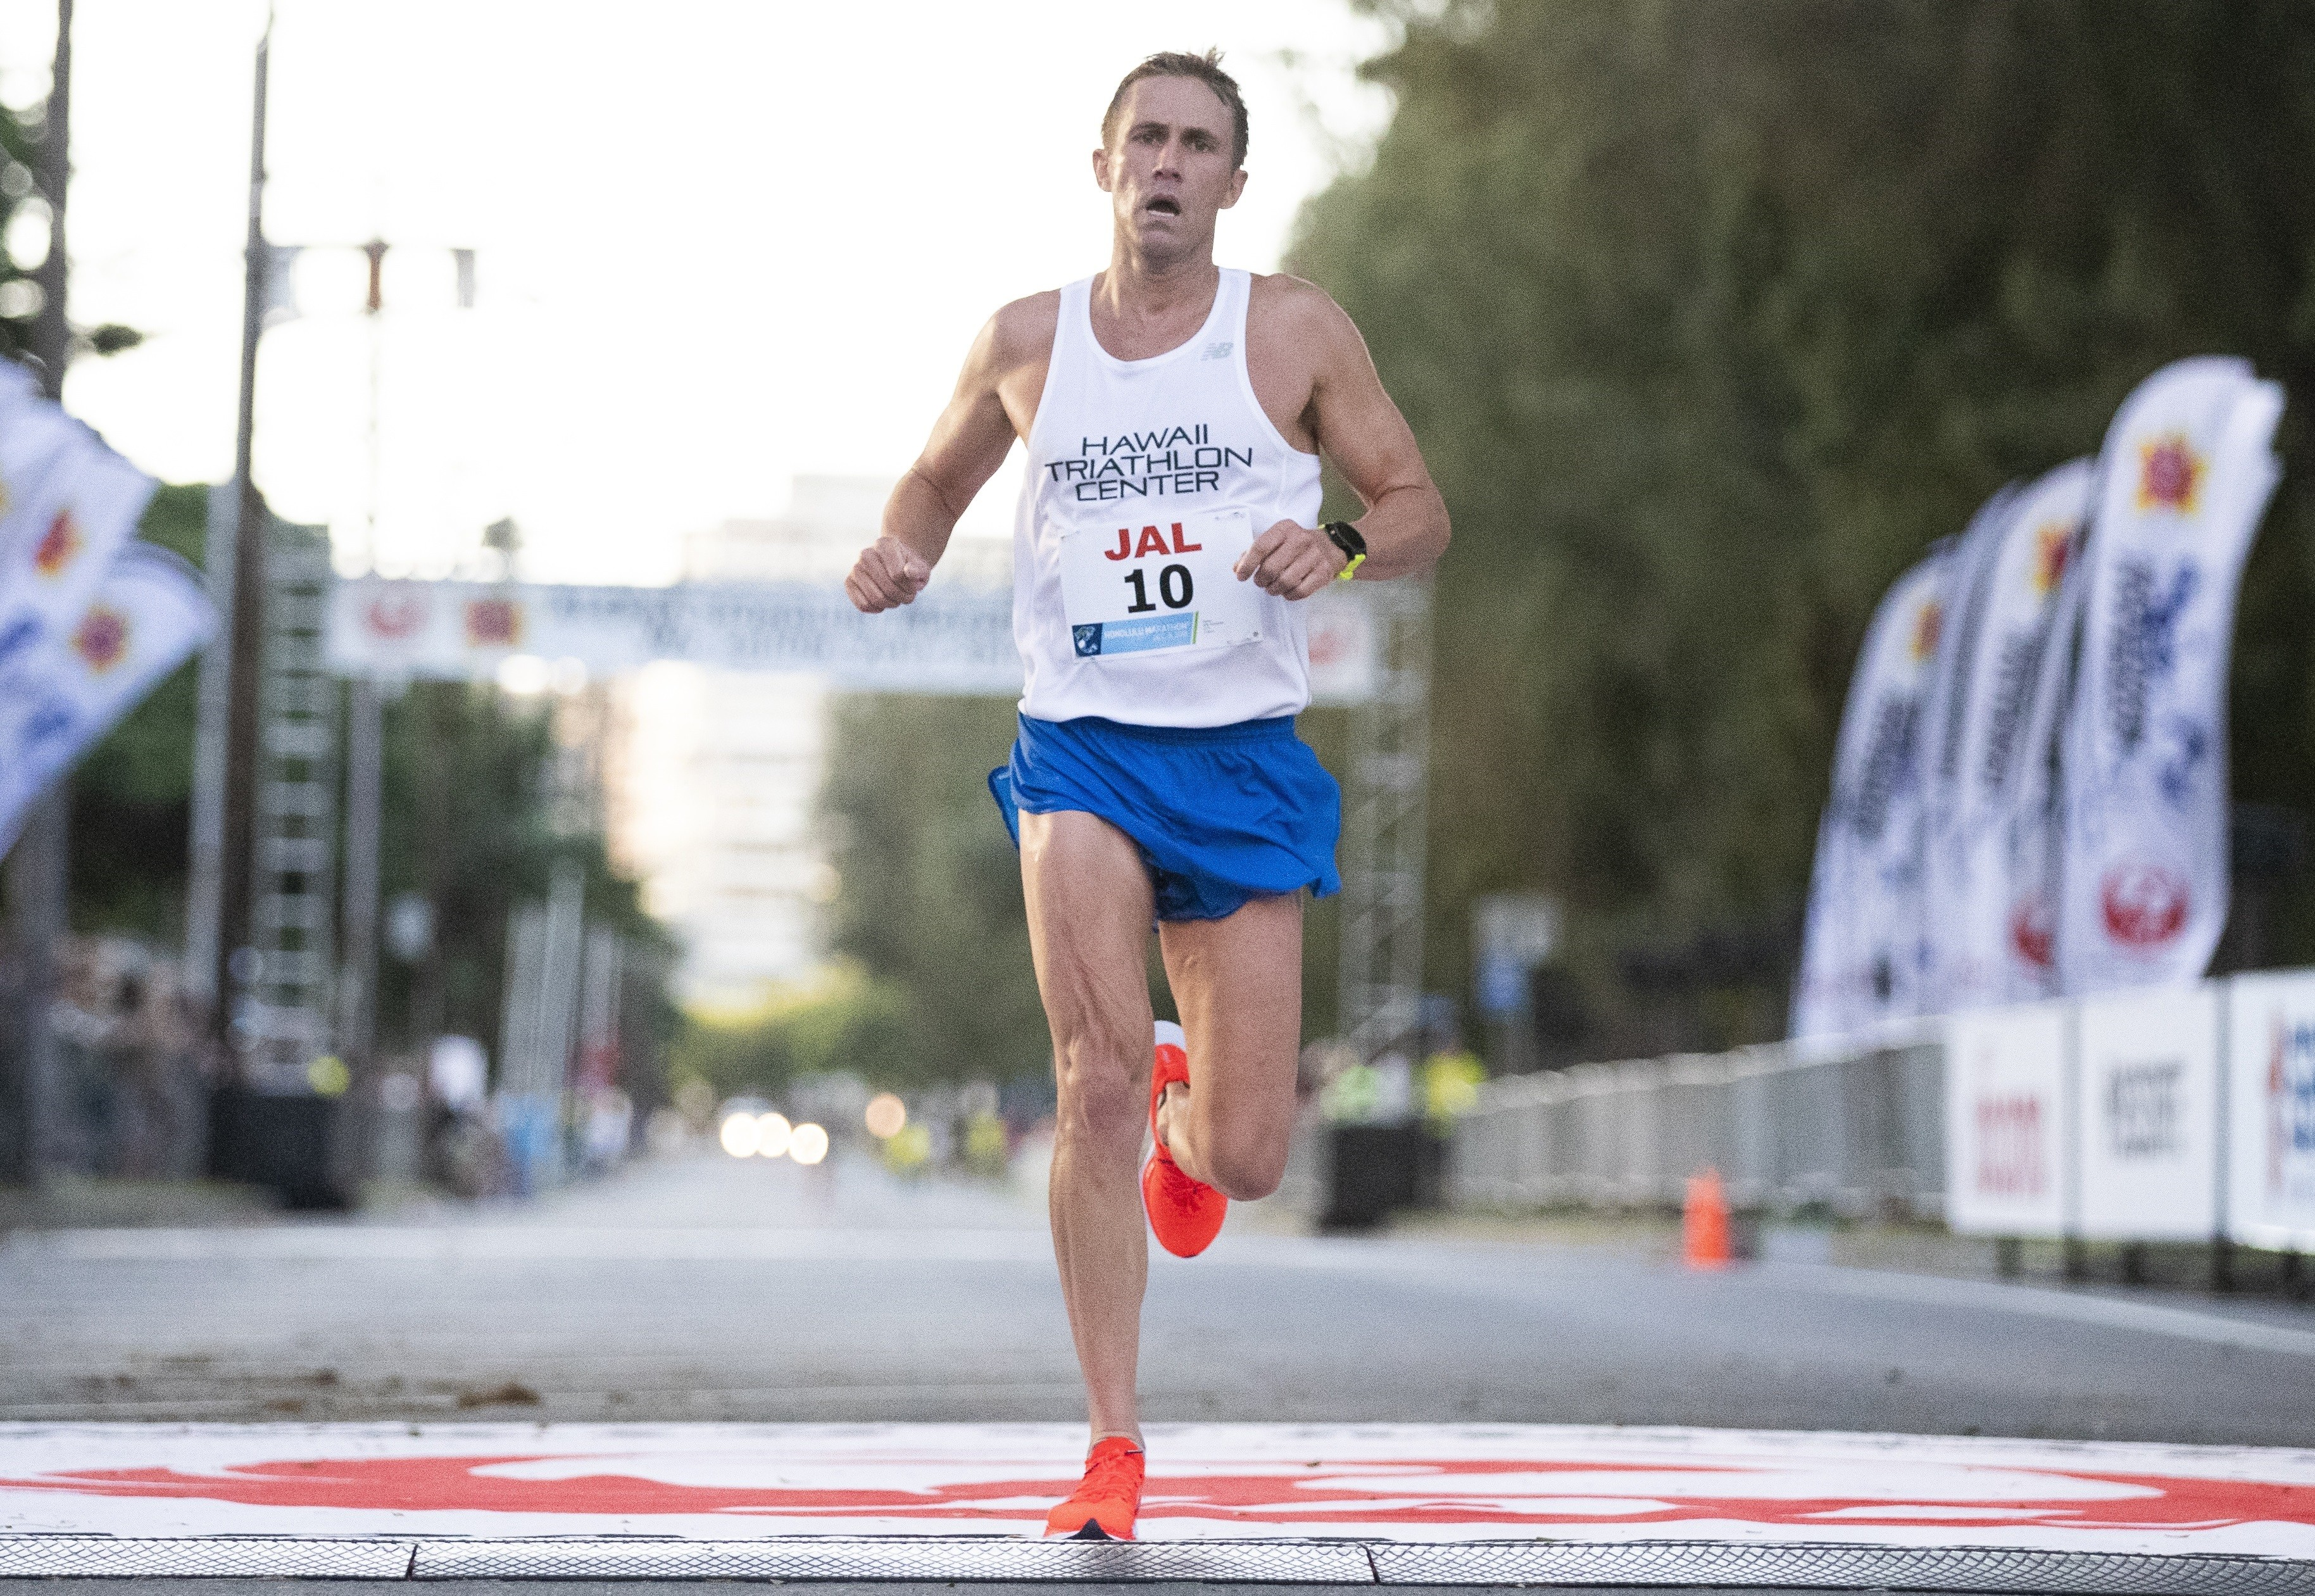 Ben Williams set a personal record during last year's Honolulu Marathon, he was also the first Hawaii resident to cross the finish line, this year, he wants to do it again